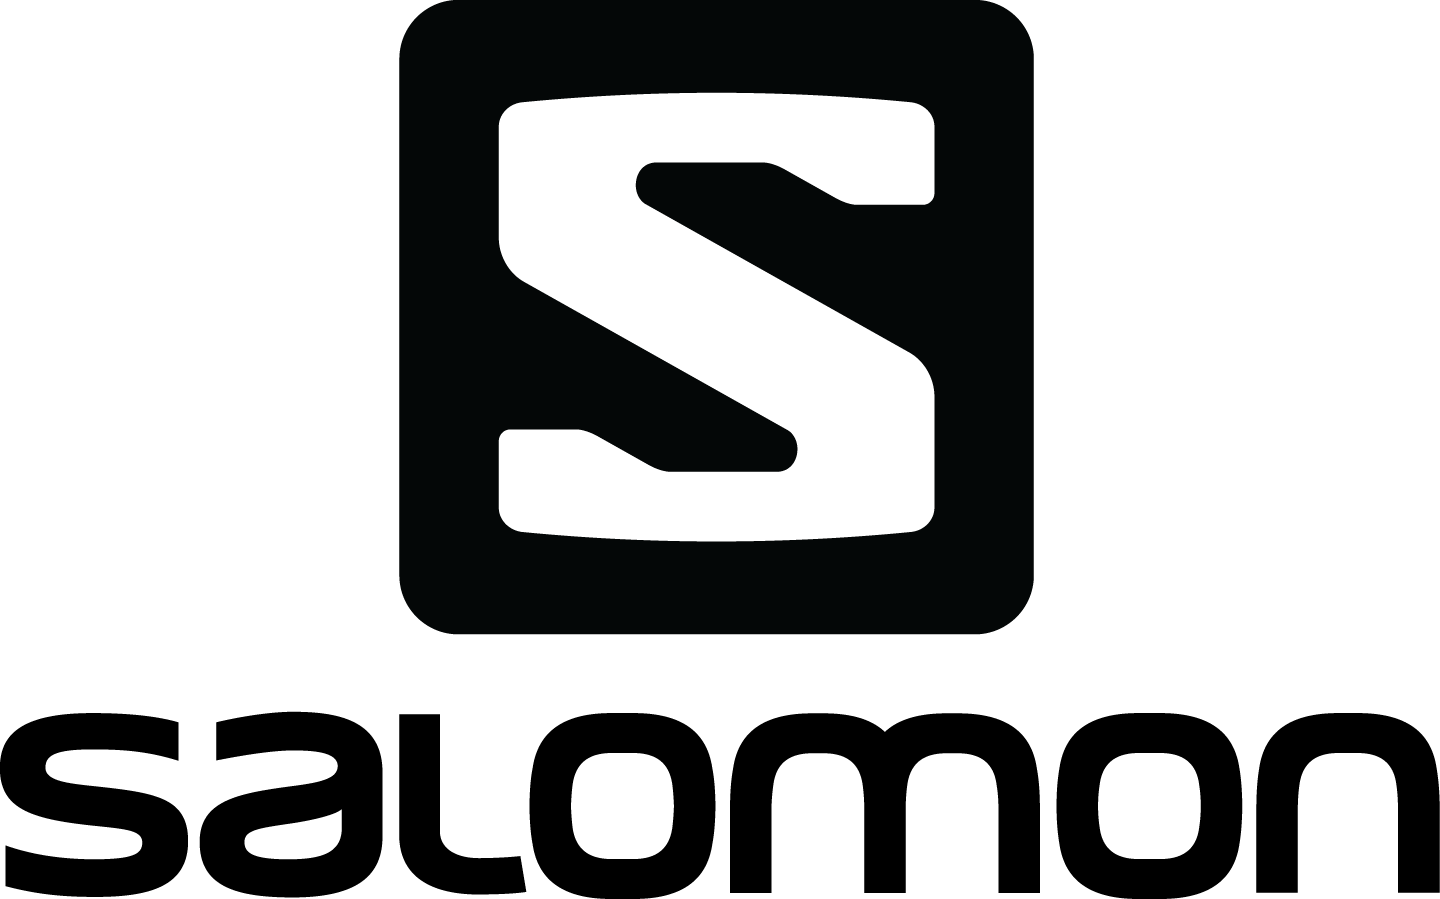 Salomon artigos desportivos